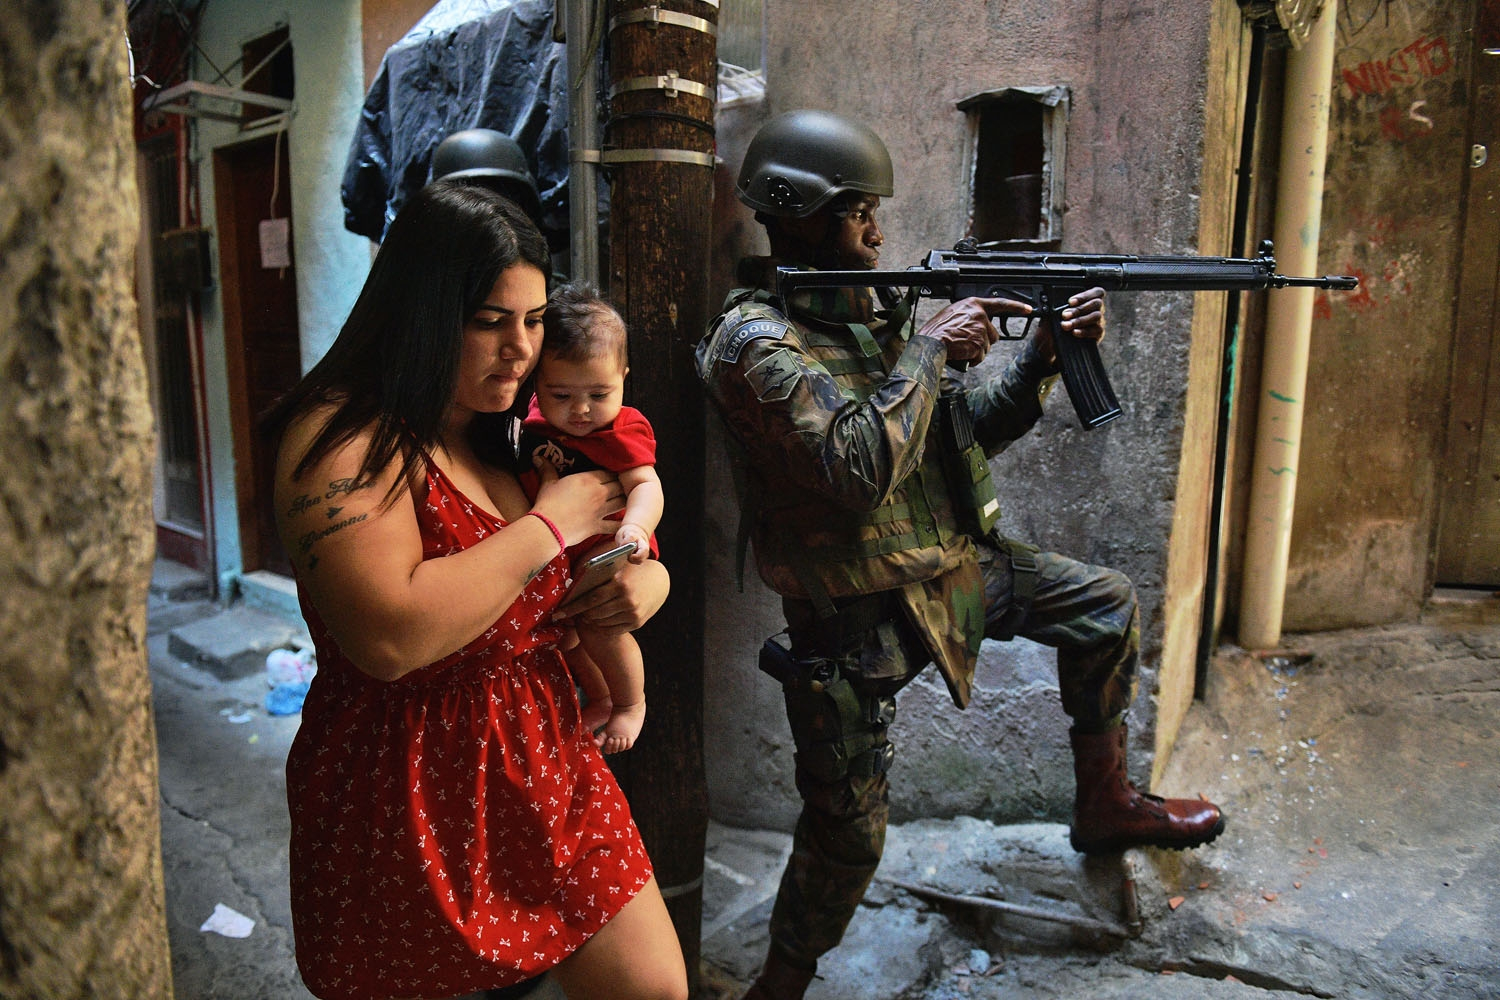 A woman walks with her baby past a PM militarized police soldier in position and aiming his rifle in Rocinha favela in Rio de Janeiro, Brazil on September 23, 2017.  Although shooting was reported in the early hours of Saturday in Rocinha -- for the seven